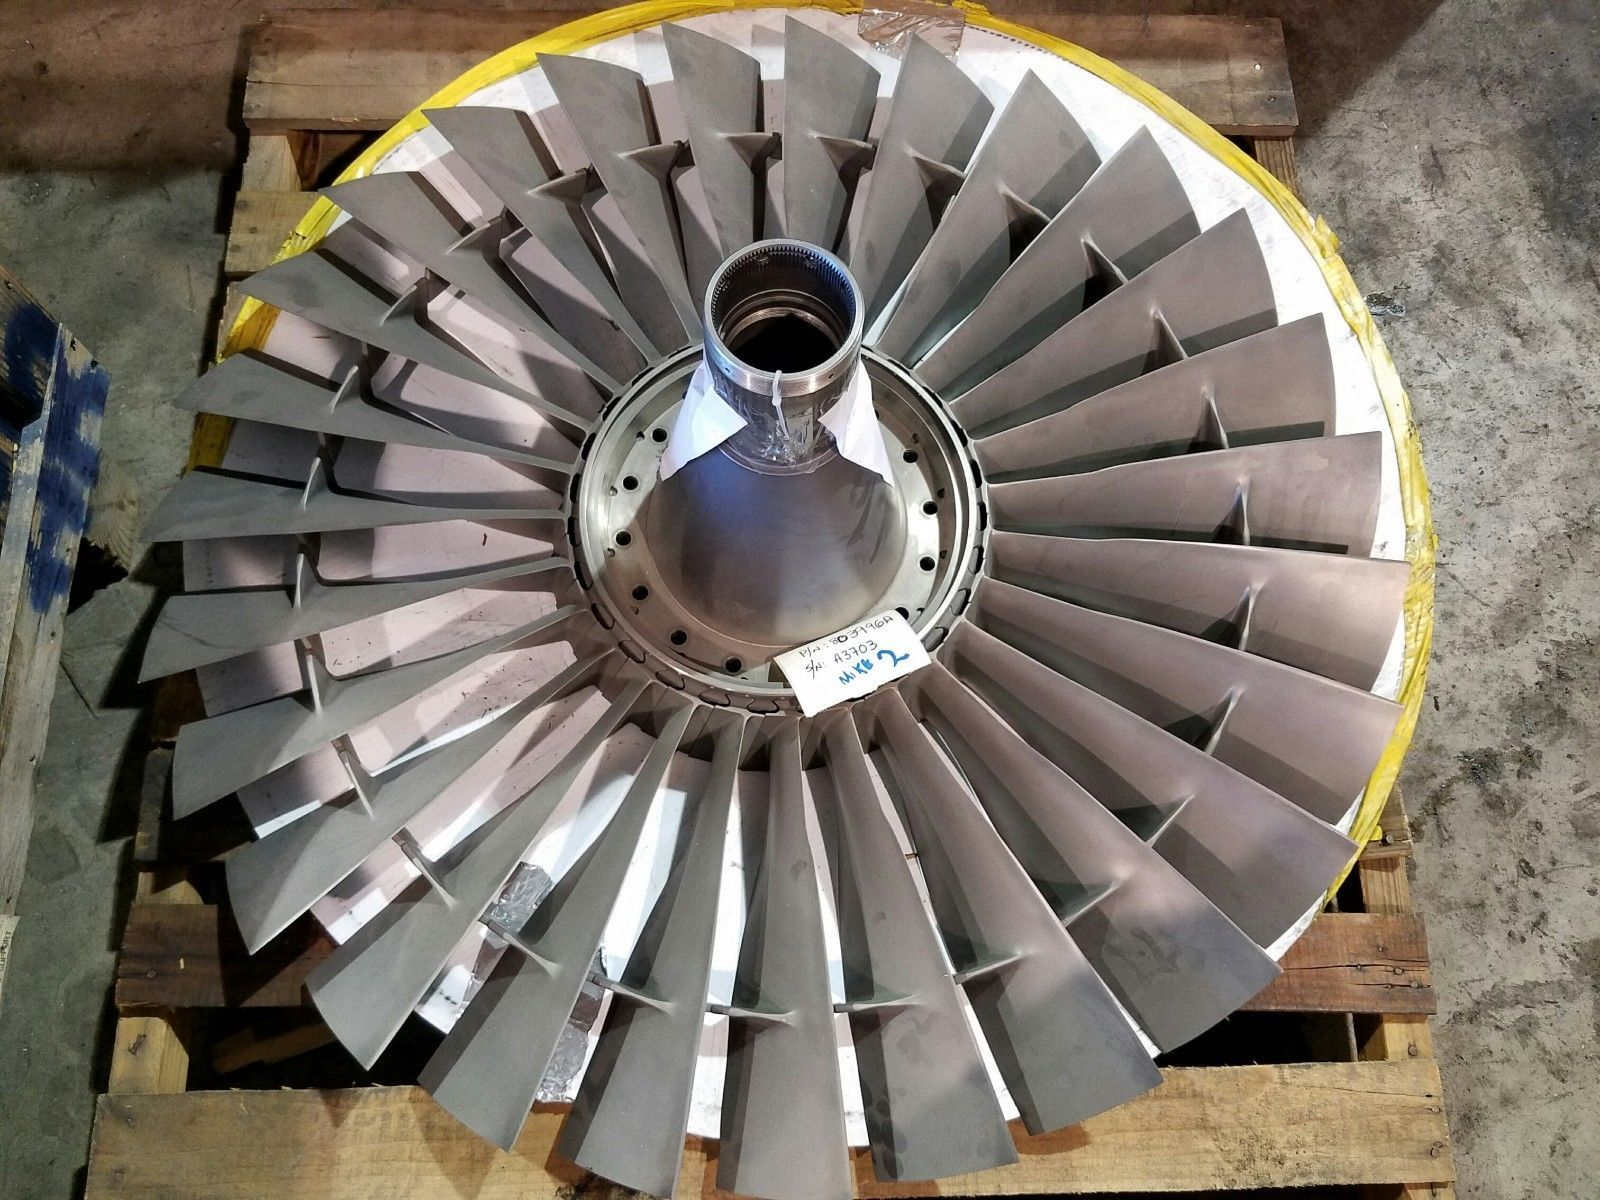 Pratt & Whitney Jt8d Stage 1 pressor Fan Boeing 737 Jet Engine